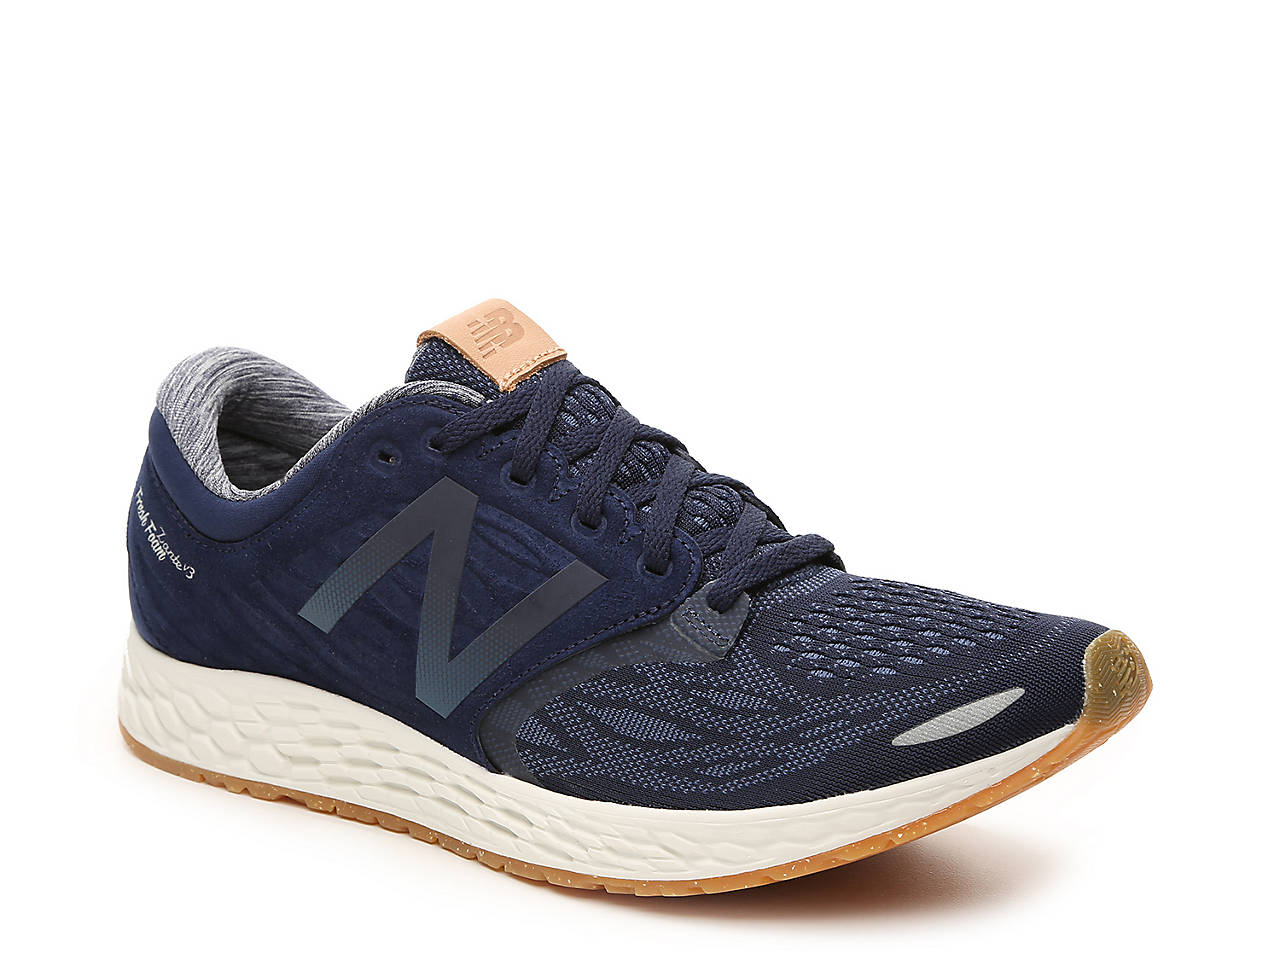 outlet eastbay New Balance Fresh Foam Zante Black Running Shoes lowest price cheap online how much online shopping online discount cheap price veA568NOQ